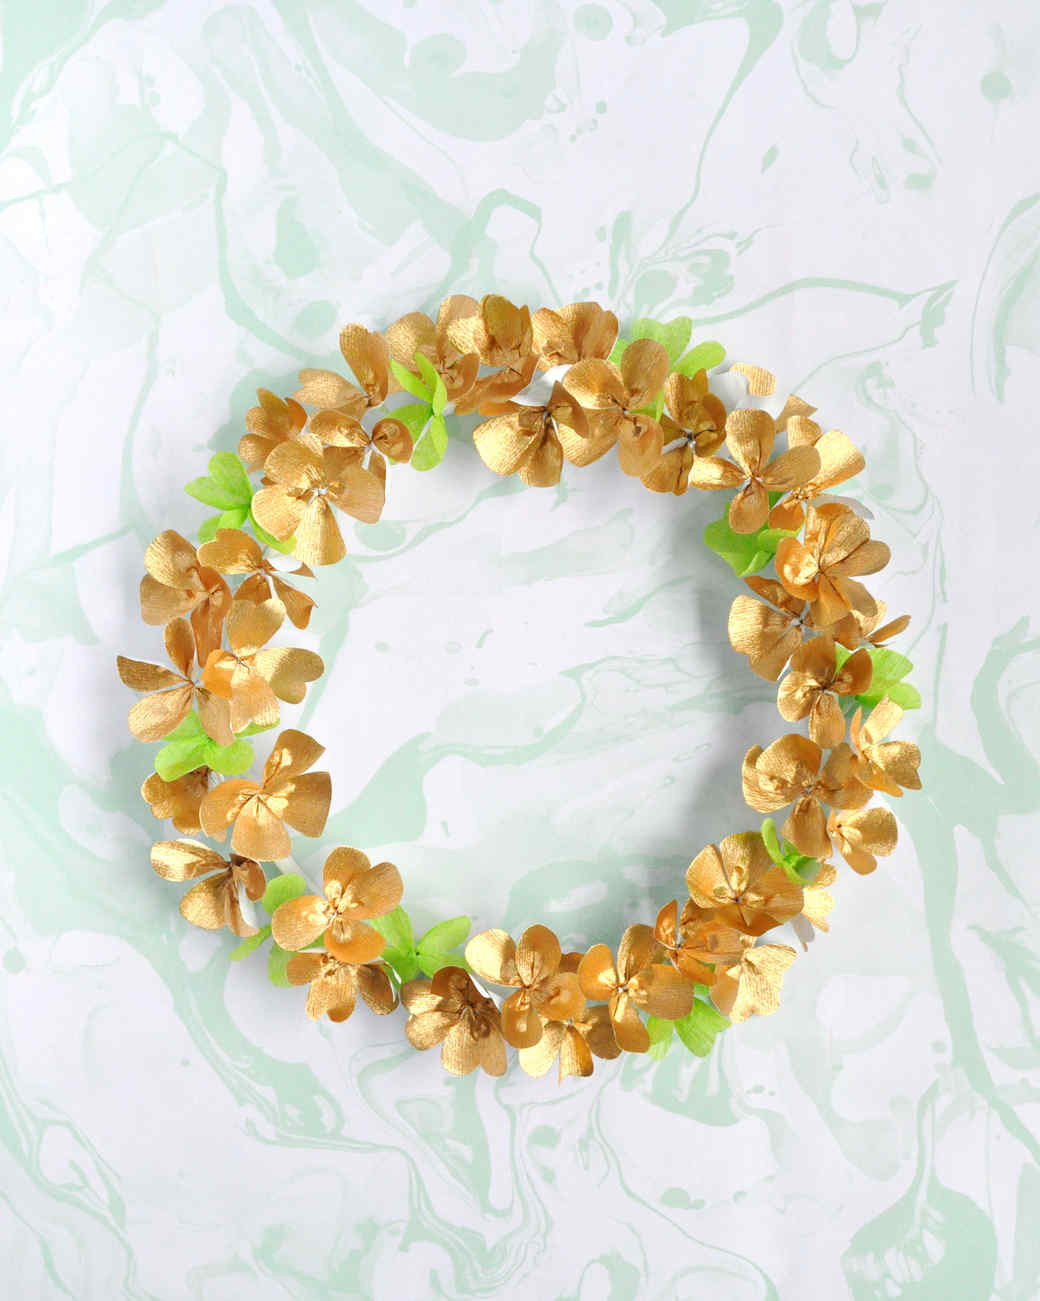 St. Patrick's Day clover wreath